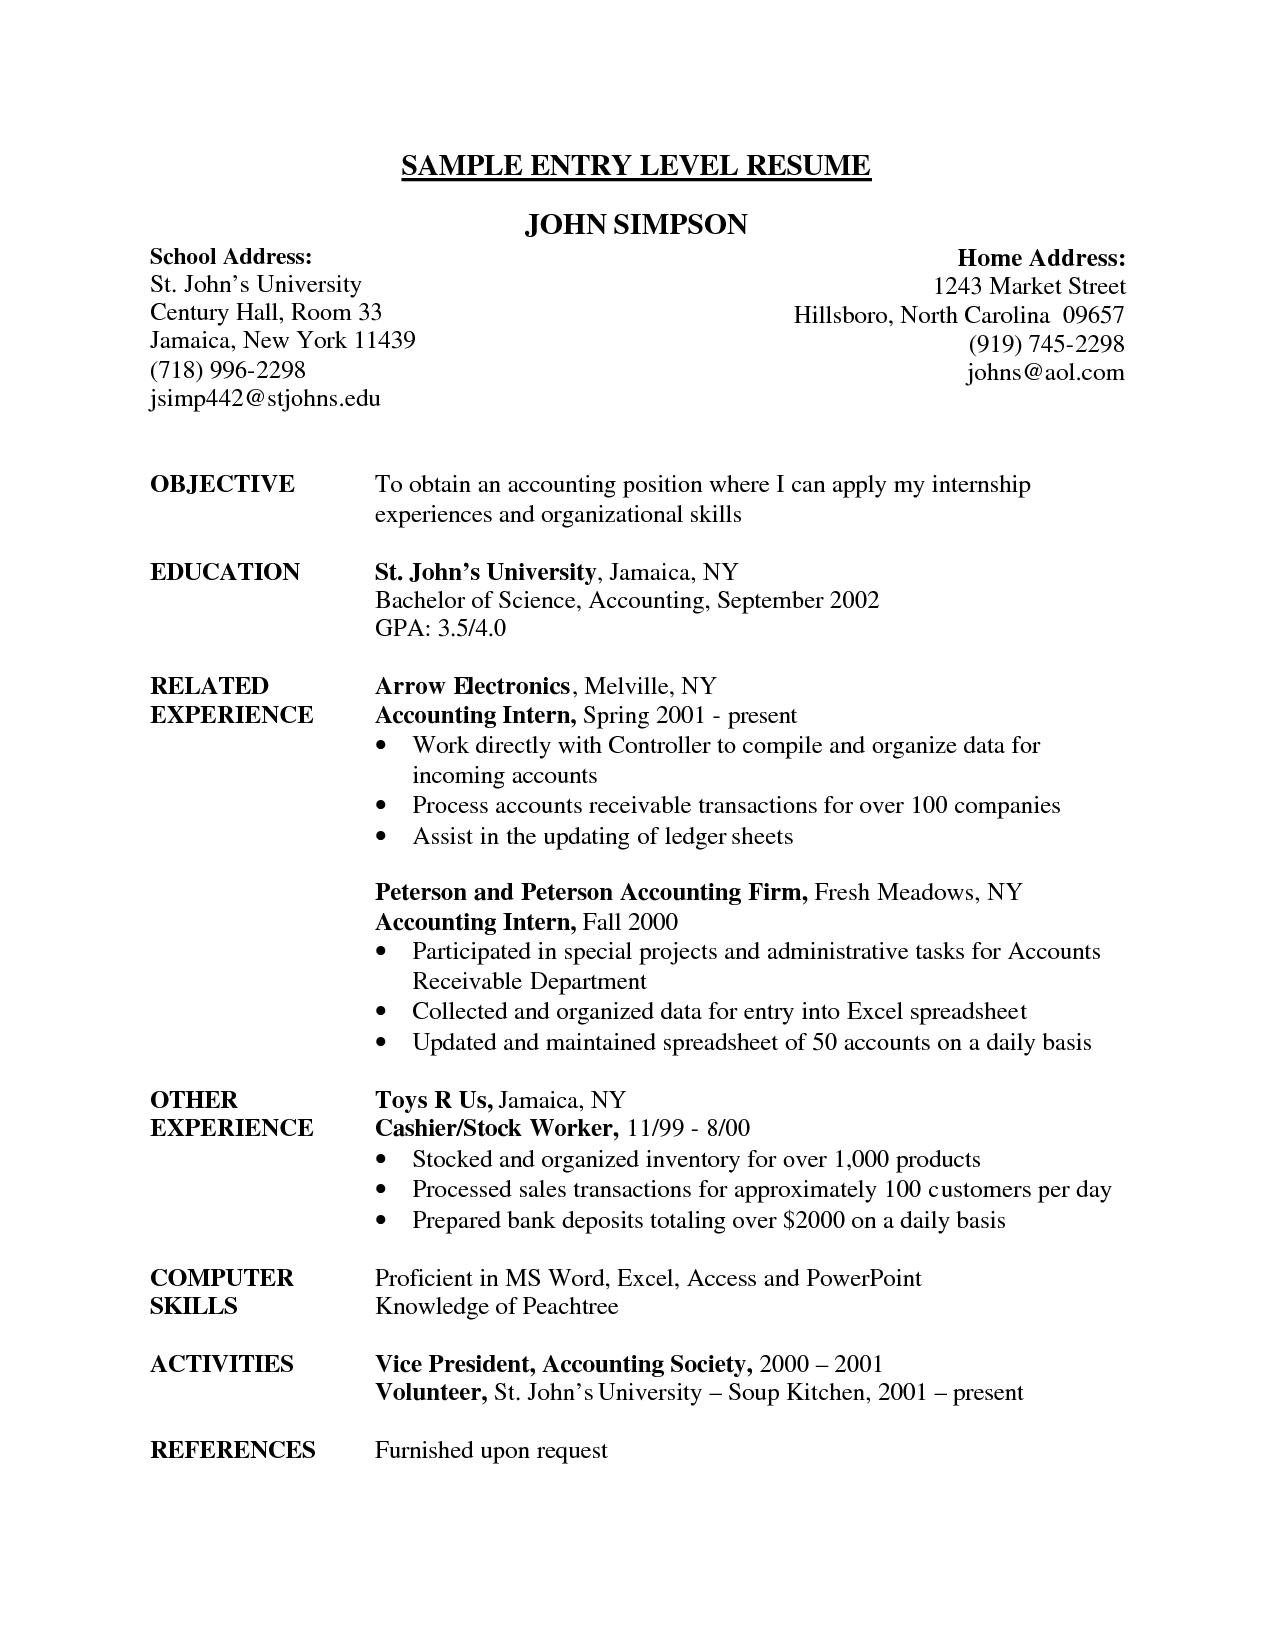 entry level accounting resume sample objective related experience - Entry Level Accountant Resume